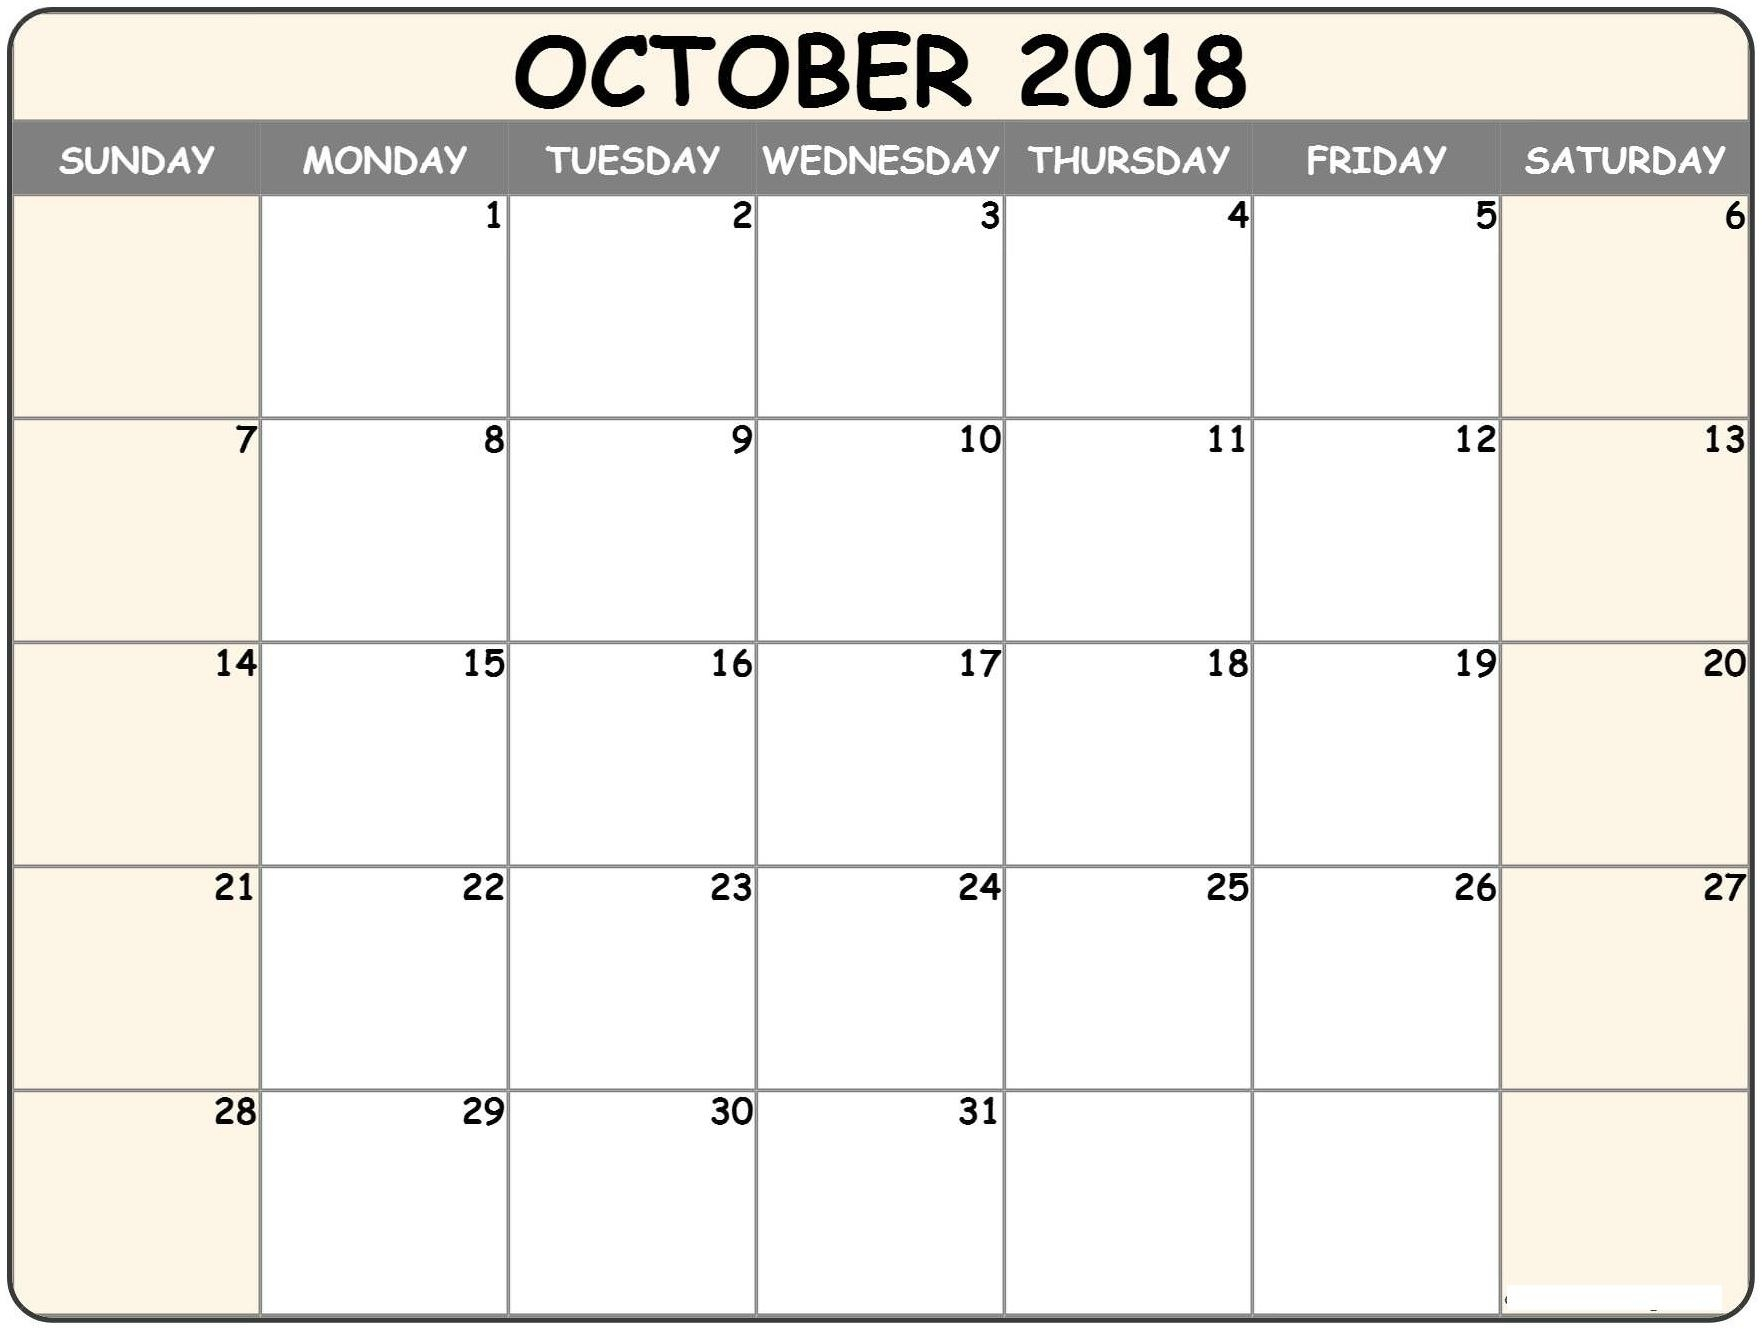 online october 2018 printable calendar daily calendar 2018 Calendar October 2018 Printables erdferdf